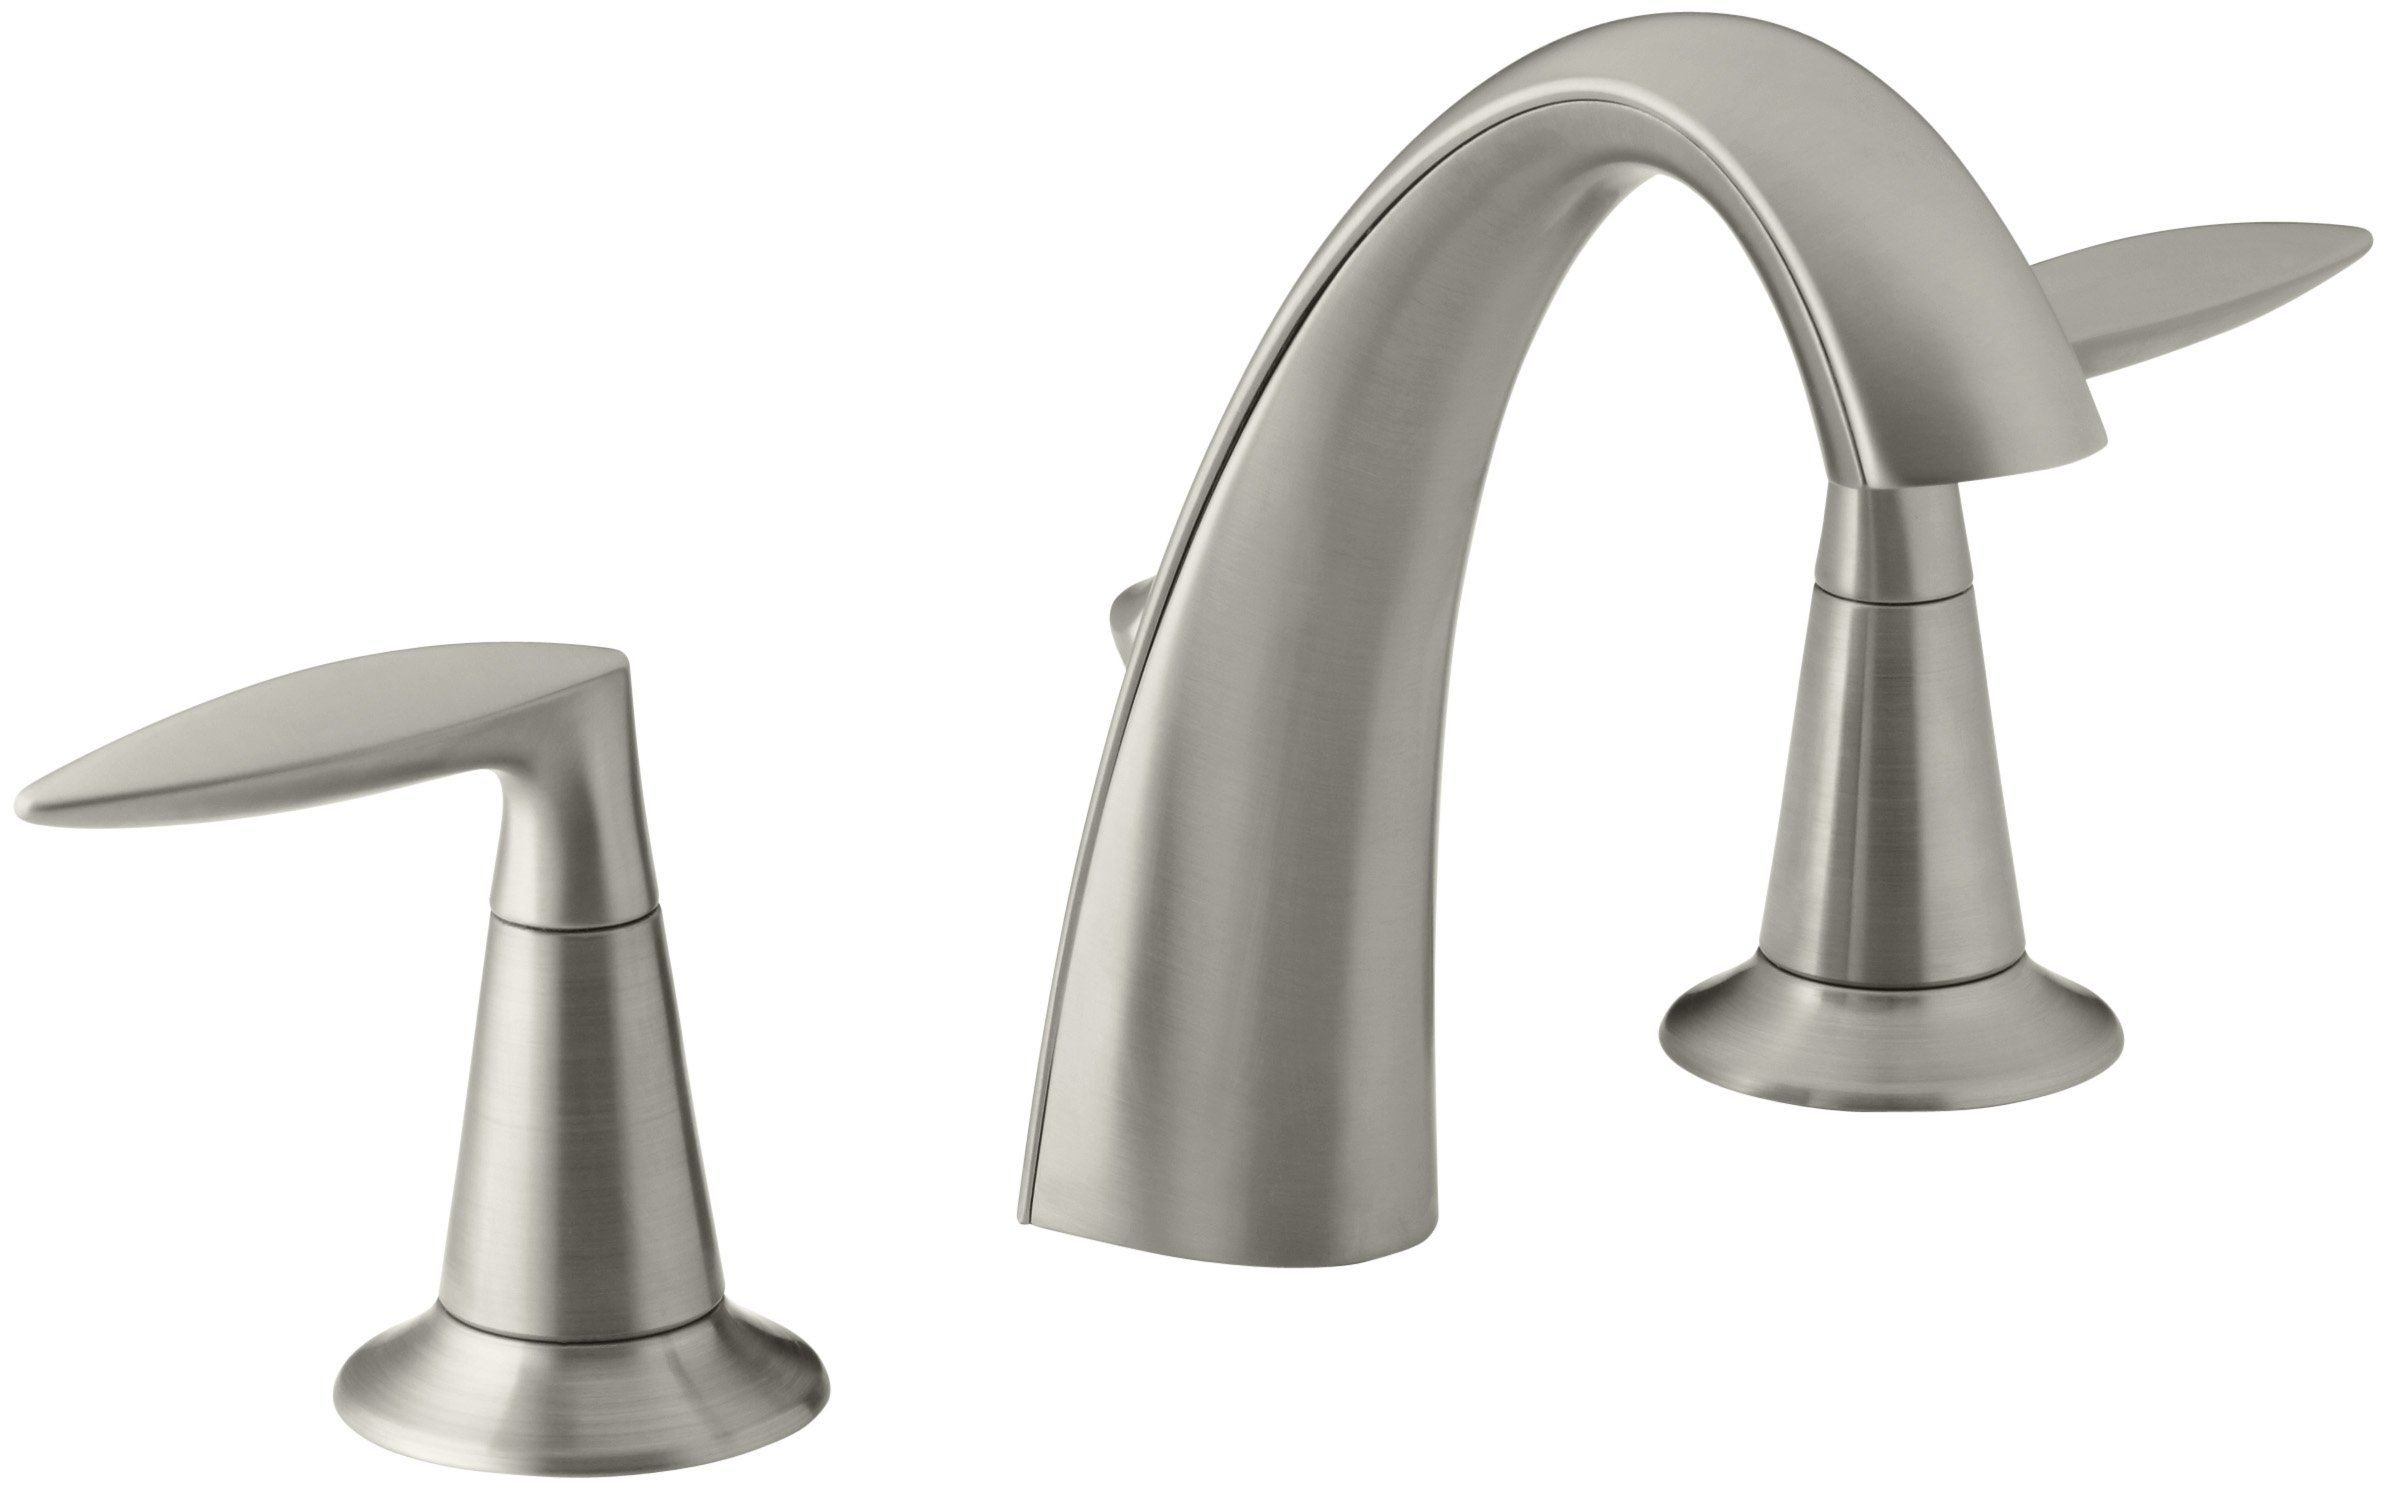 Kohler K451024Bn Alteo Widespread Lavatory Faucet Vibrant Mesmerizing Brushed Nickel Bathroom Faucets Review